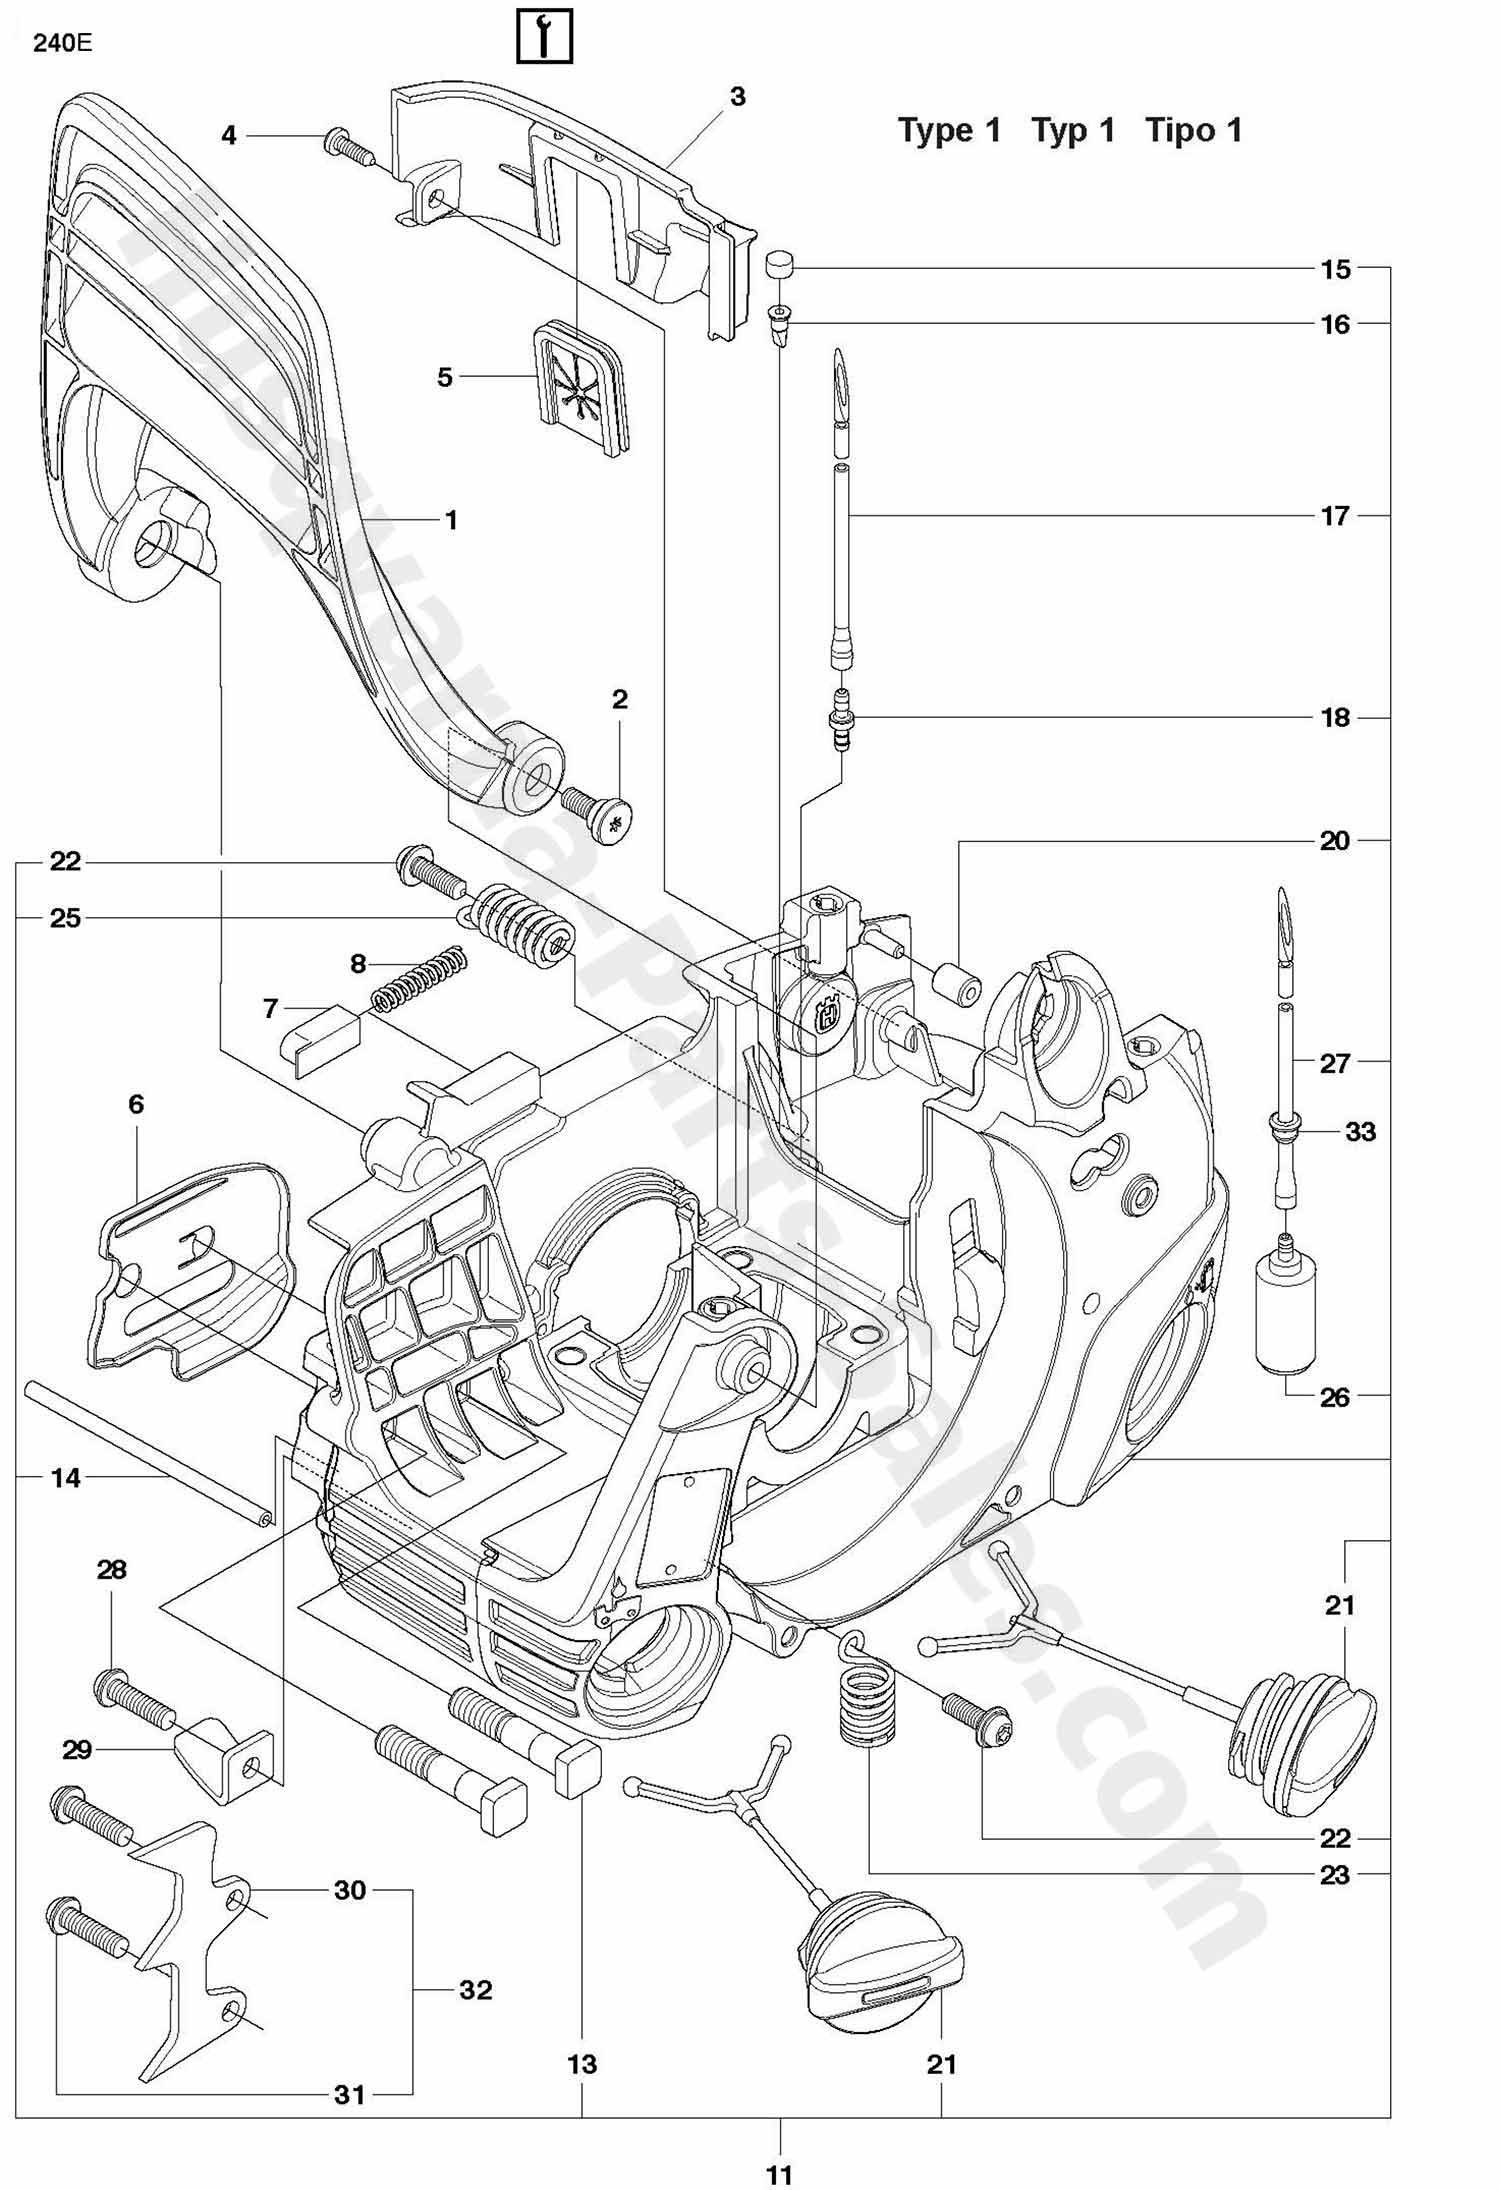 Diagram Of Stihl Tiller Engine Example Electrical Wiring Chainsaw Parts On Br 600 Carburetor List Husqvarna Edger Tractor And Ms 250 Fs